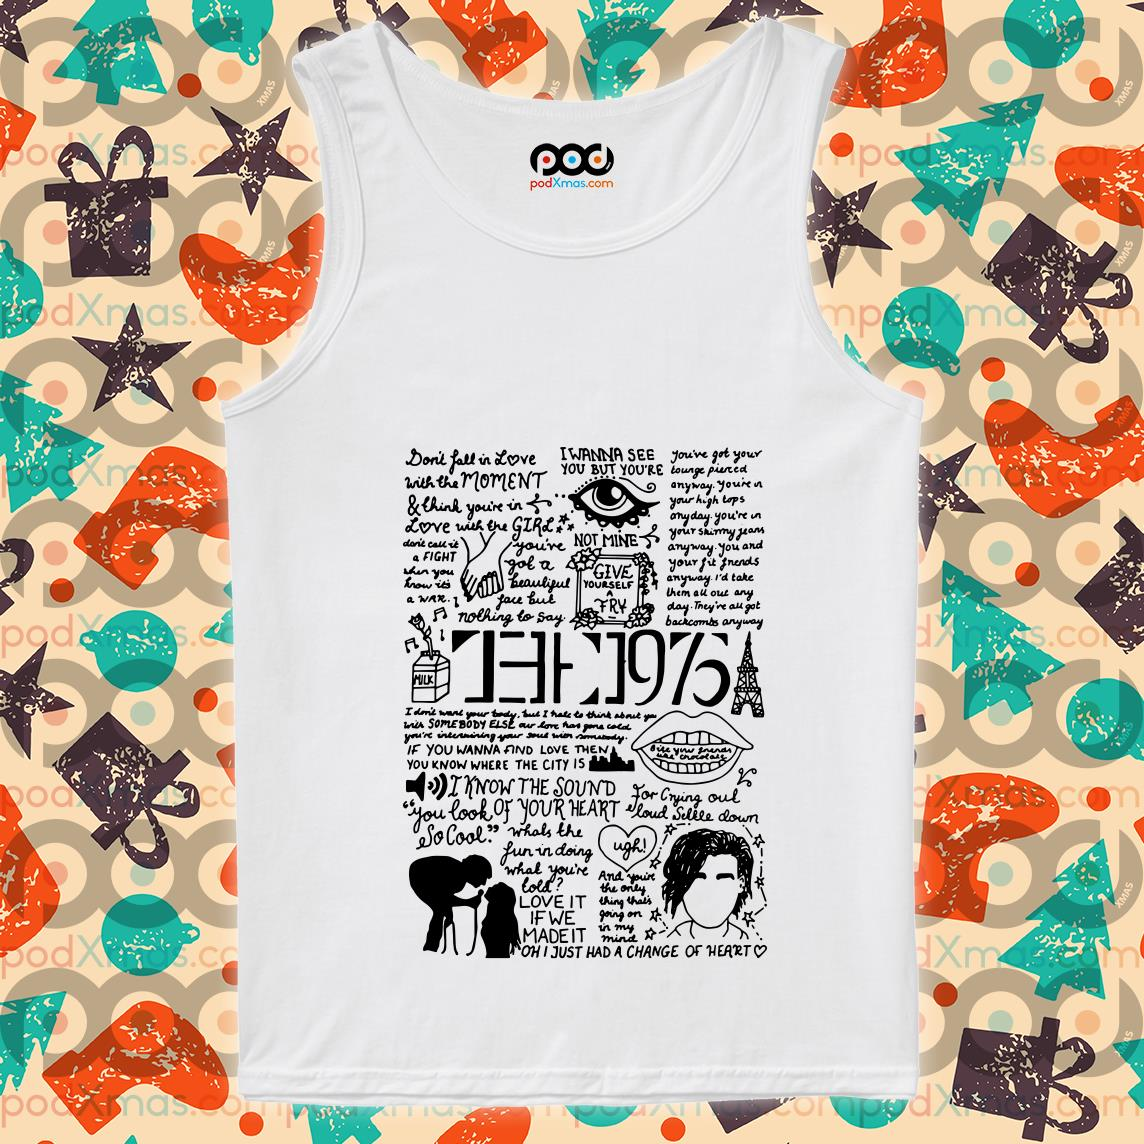 I wanna see you but you're not mine the 1975 lyrics tank top